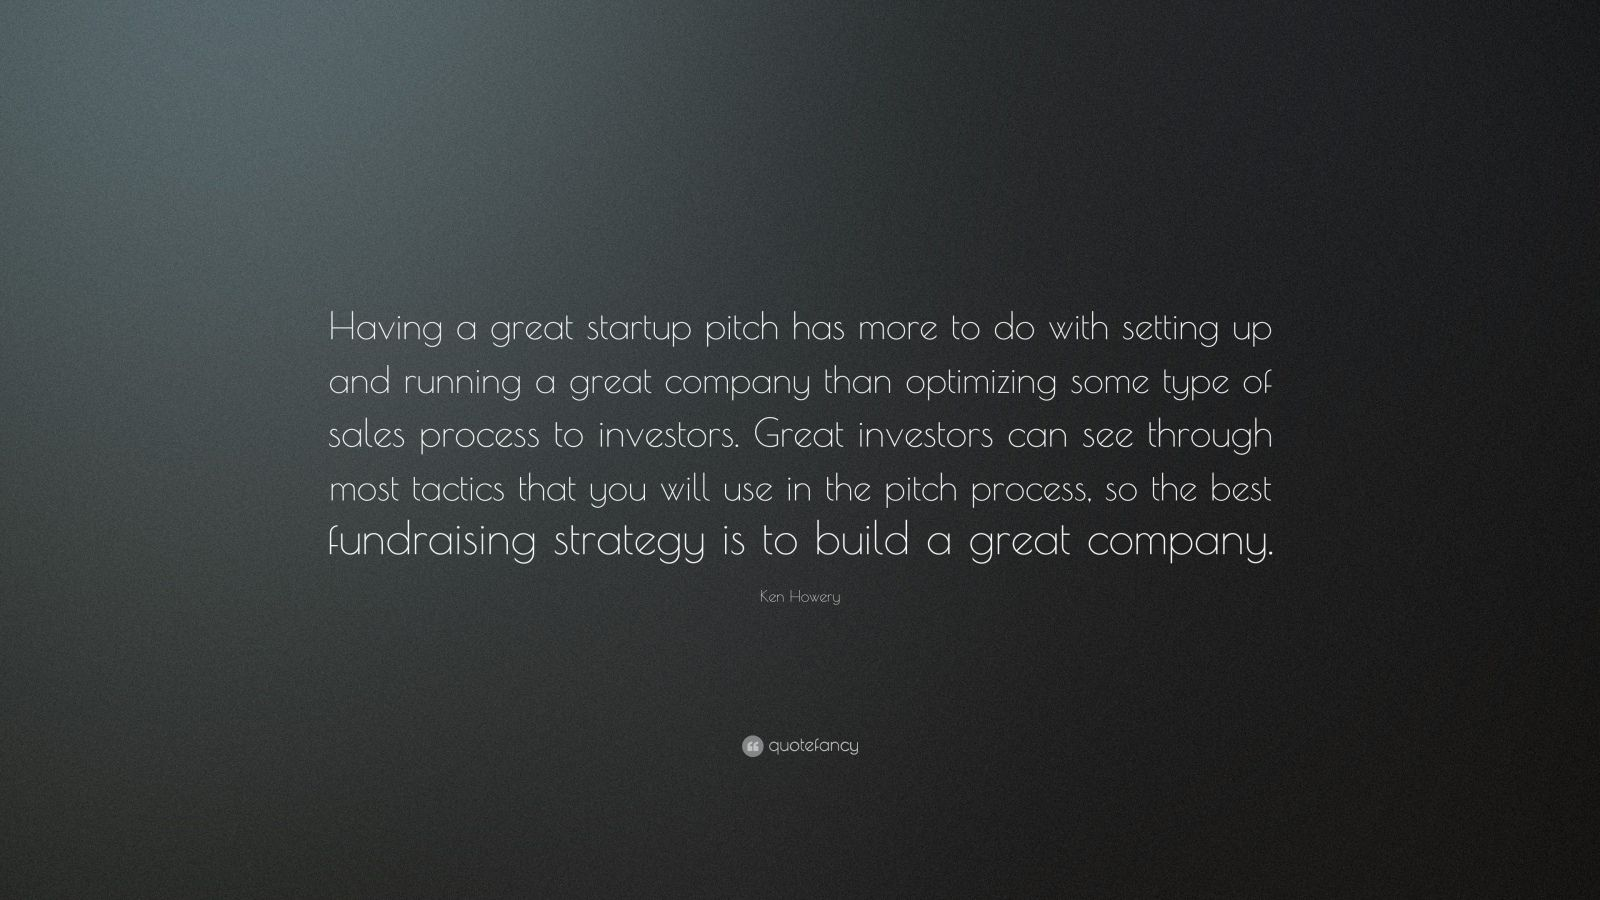 """Ken Howery Quote: """"Having a great startup pitch has more to do with setting up and running a great company than optimizing some type of sales process to investors. Great investors can see through most tactics that you will use in the pitch process, so the best fundraising strategy is to build a great company."""""""